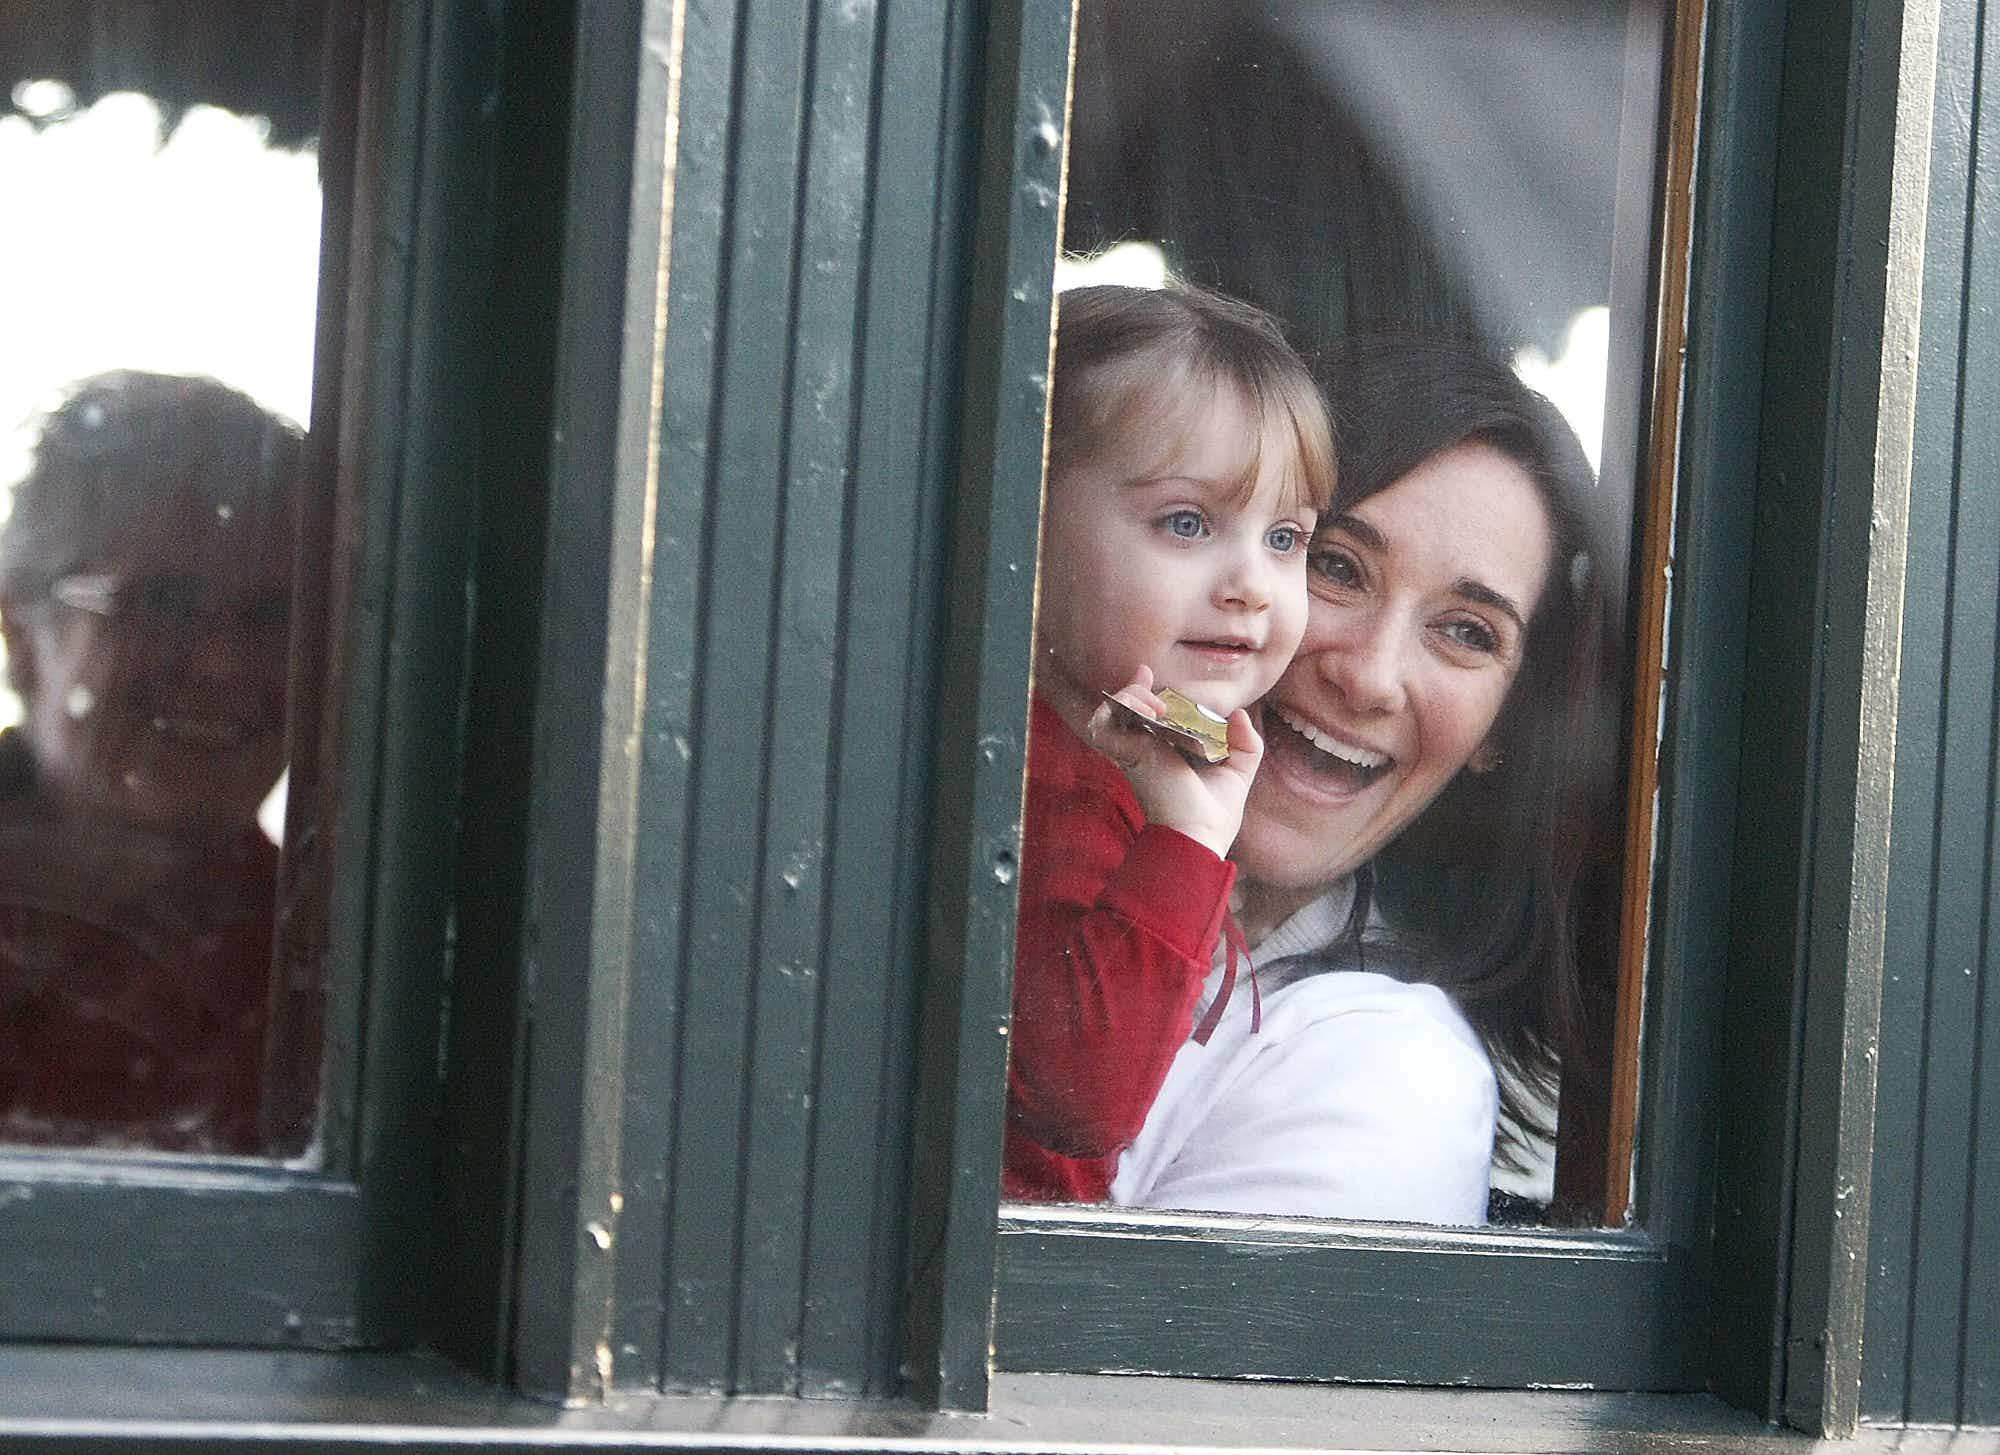 All aboard The Polar Express as the Maine ride celebrates its 10th anniversary this winter